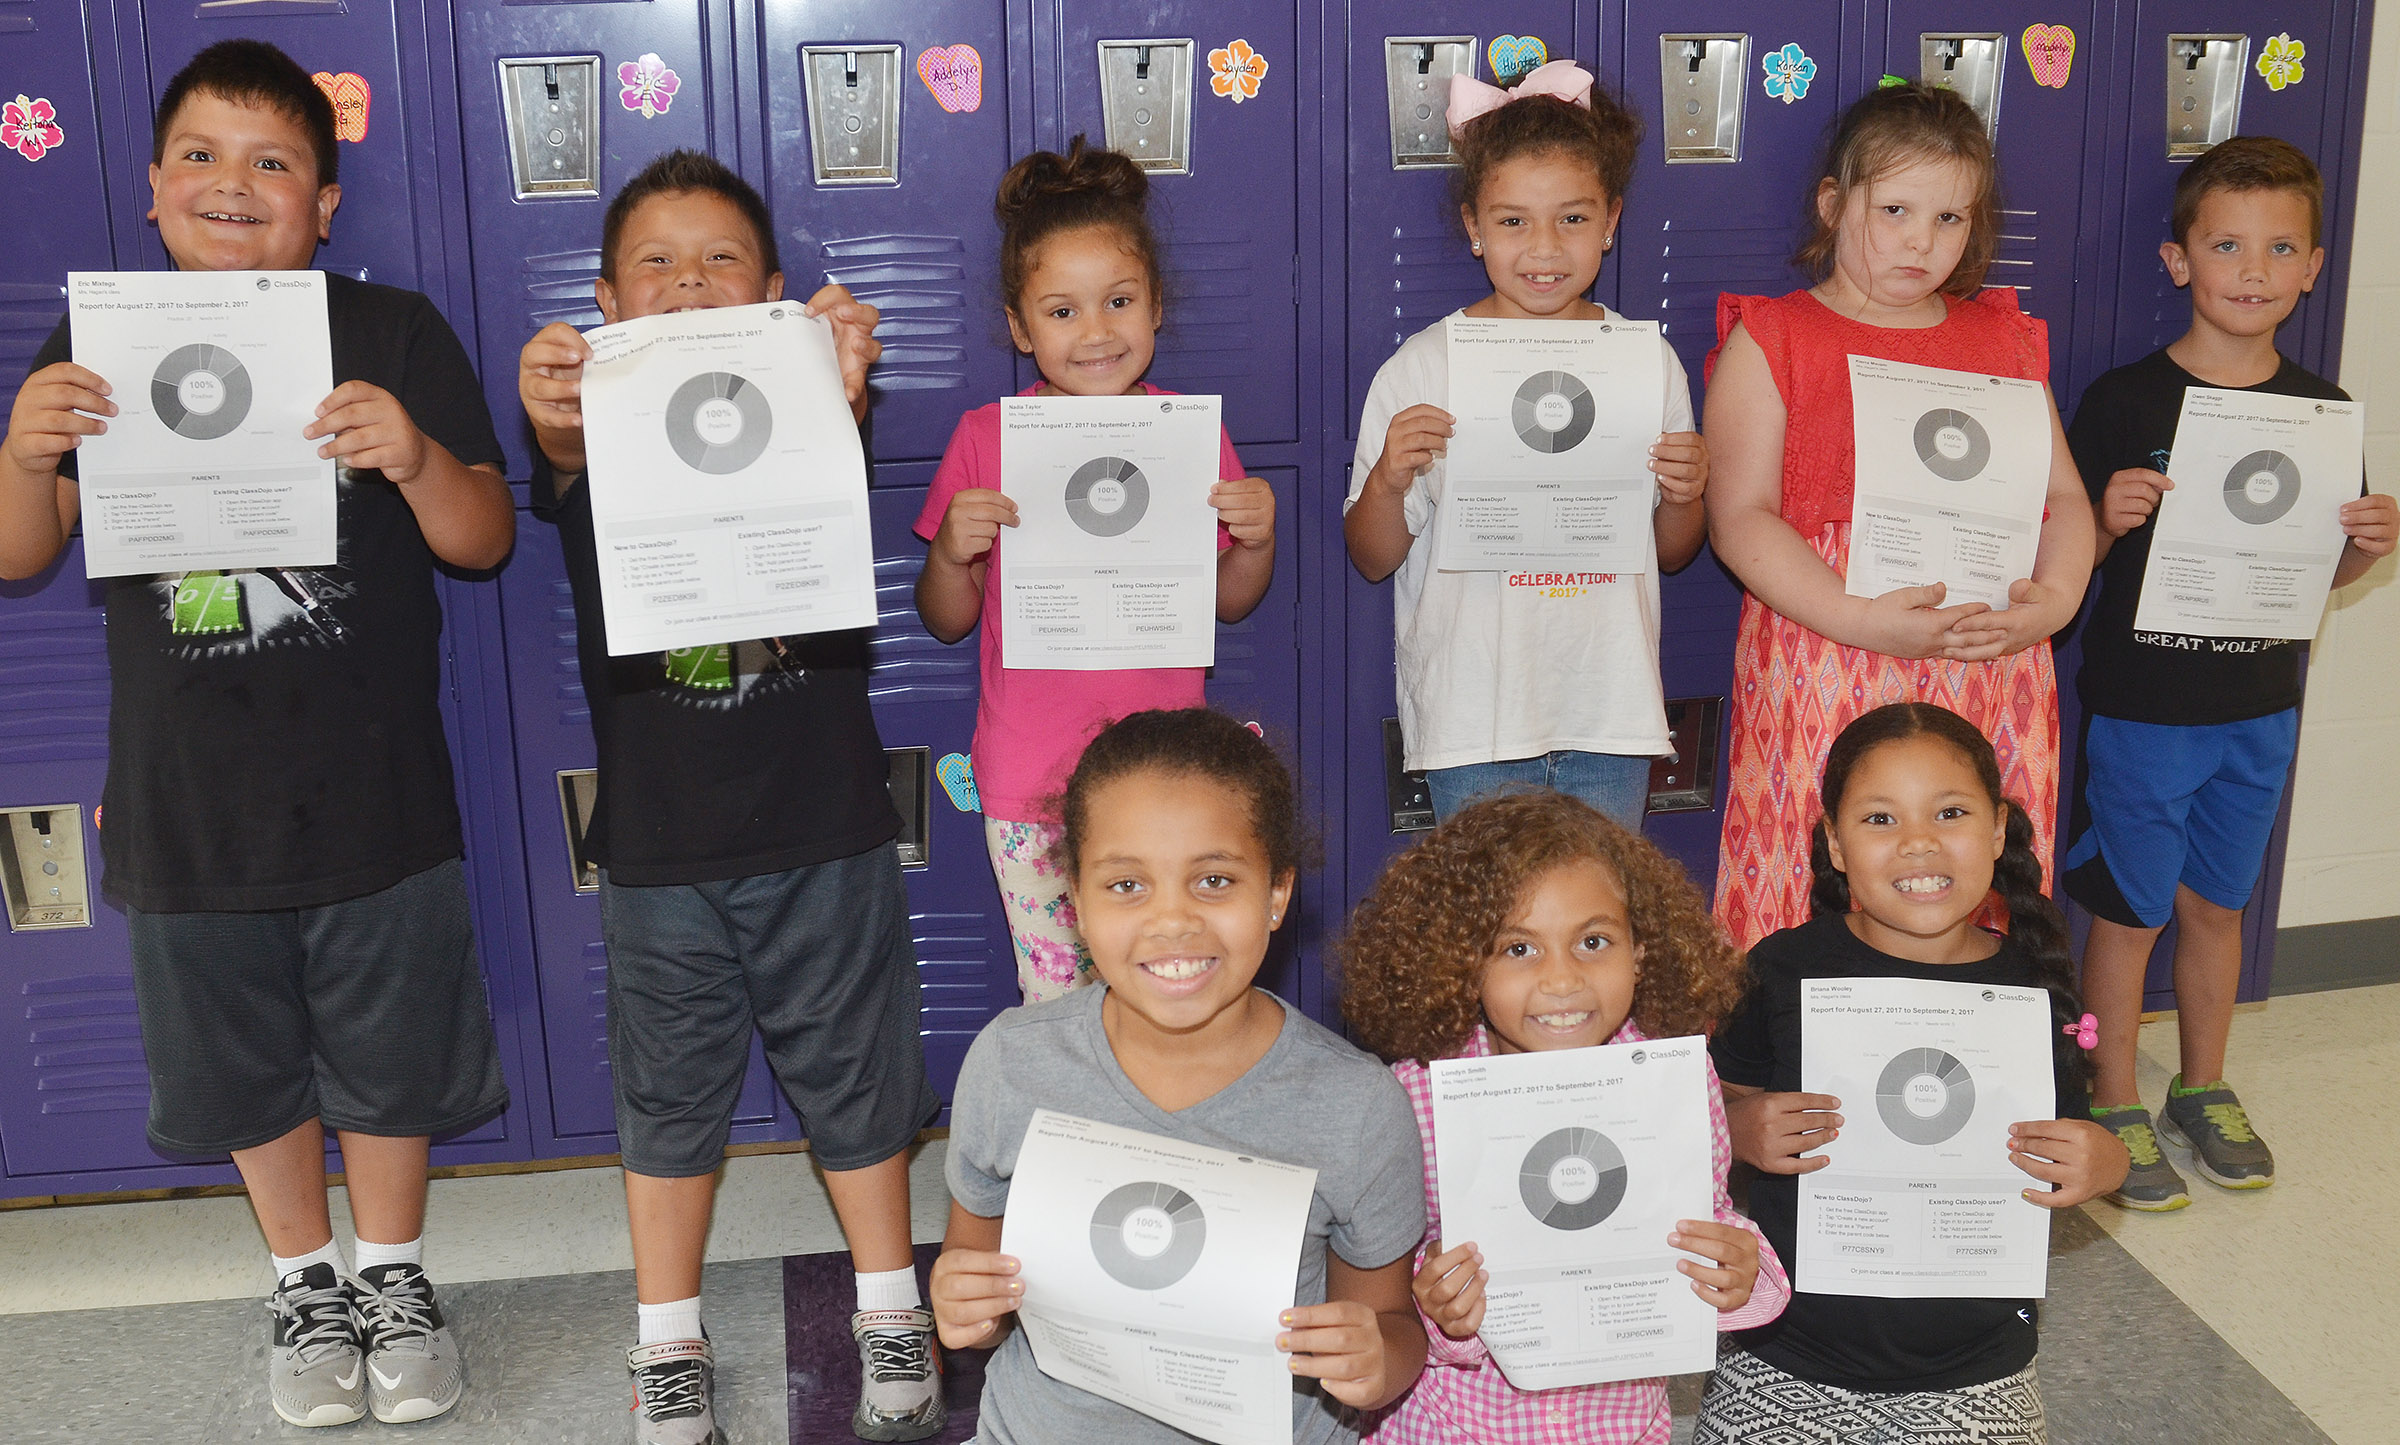 Tonya Hagan's students recently honored for receiving 100 percent positive Dojos during a recent week include, from left, front, Journey Webb, Londyn Smith and Briana Wooley. Back, Eric Mixtega, Alex Mixtega, Nadia Taylor, Ammarissa Nunez, Kierra Maupin and Owen Skaggs.